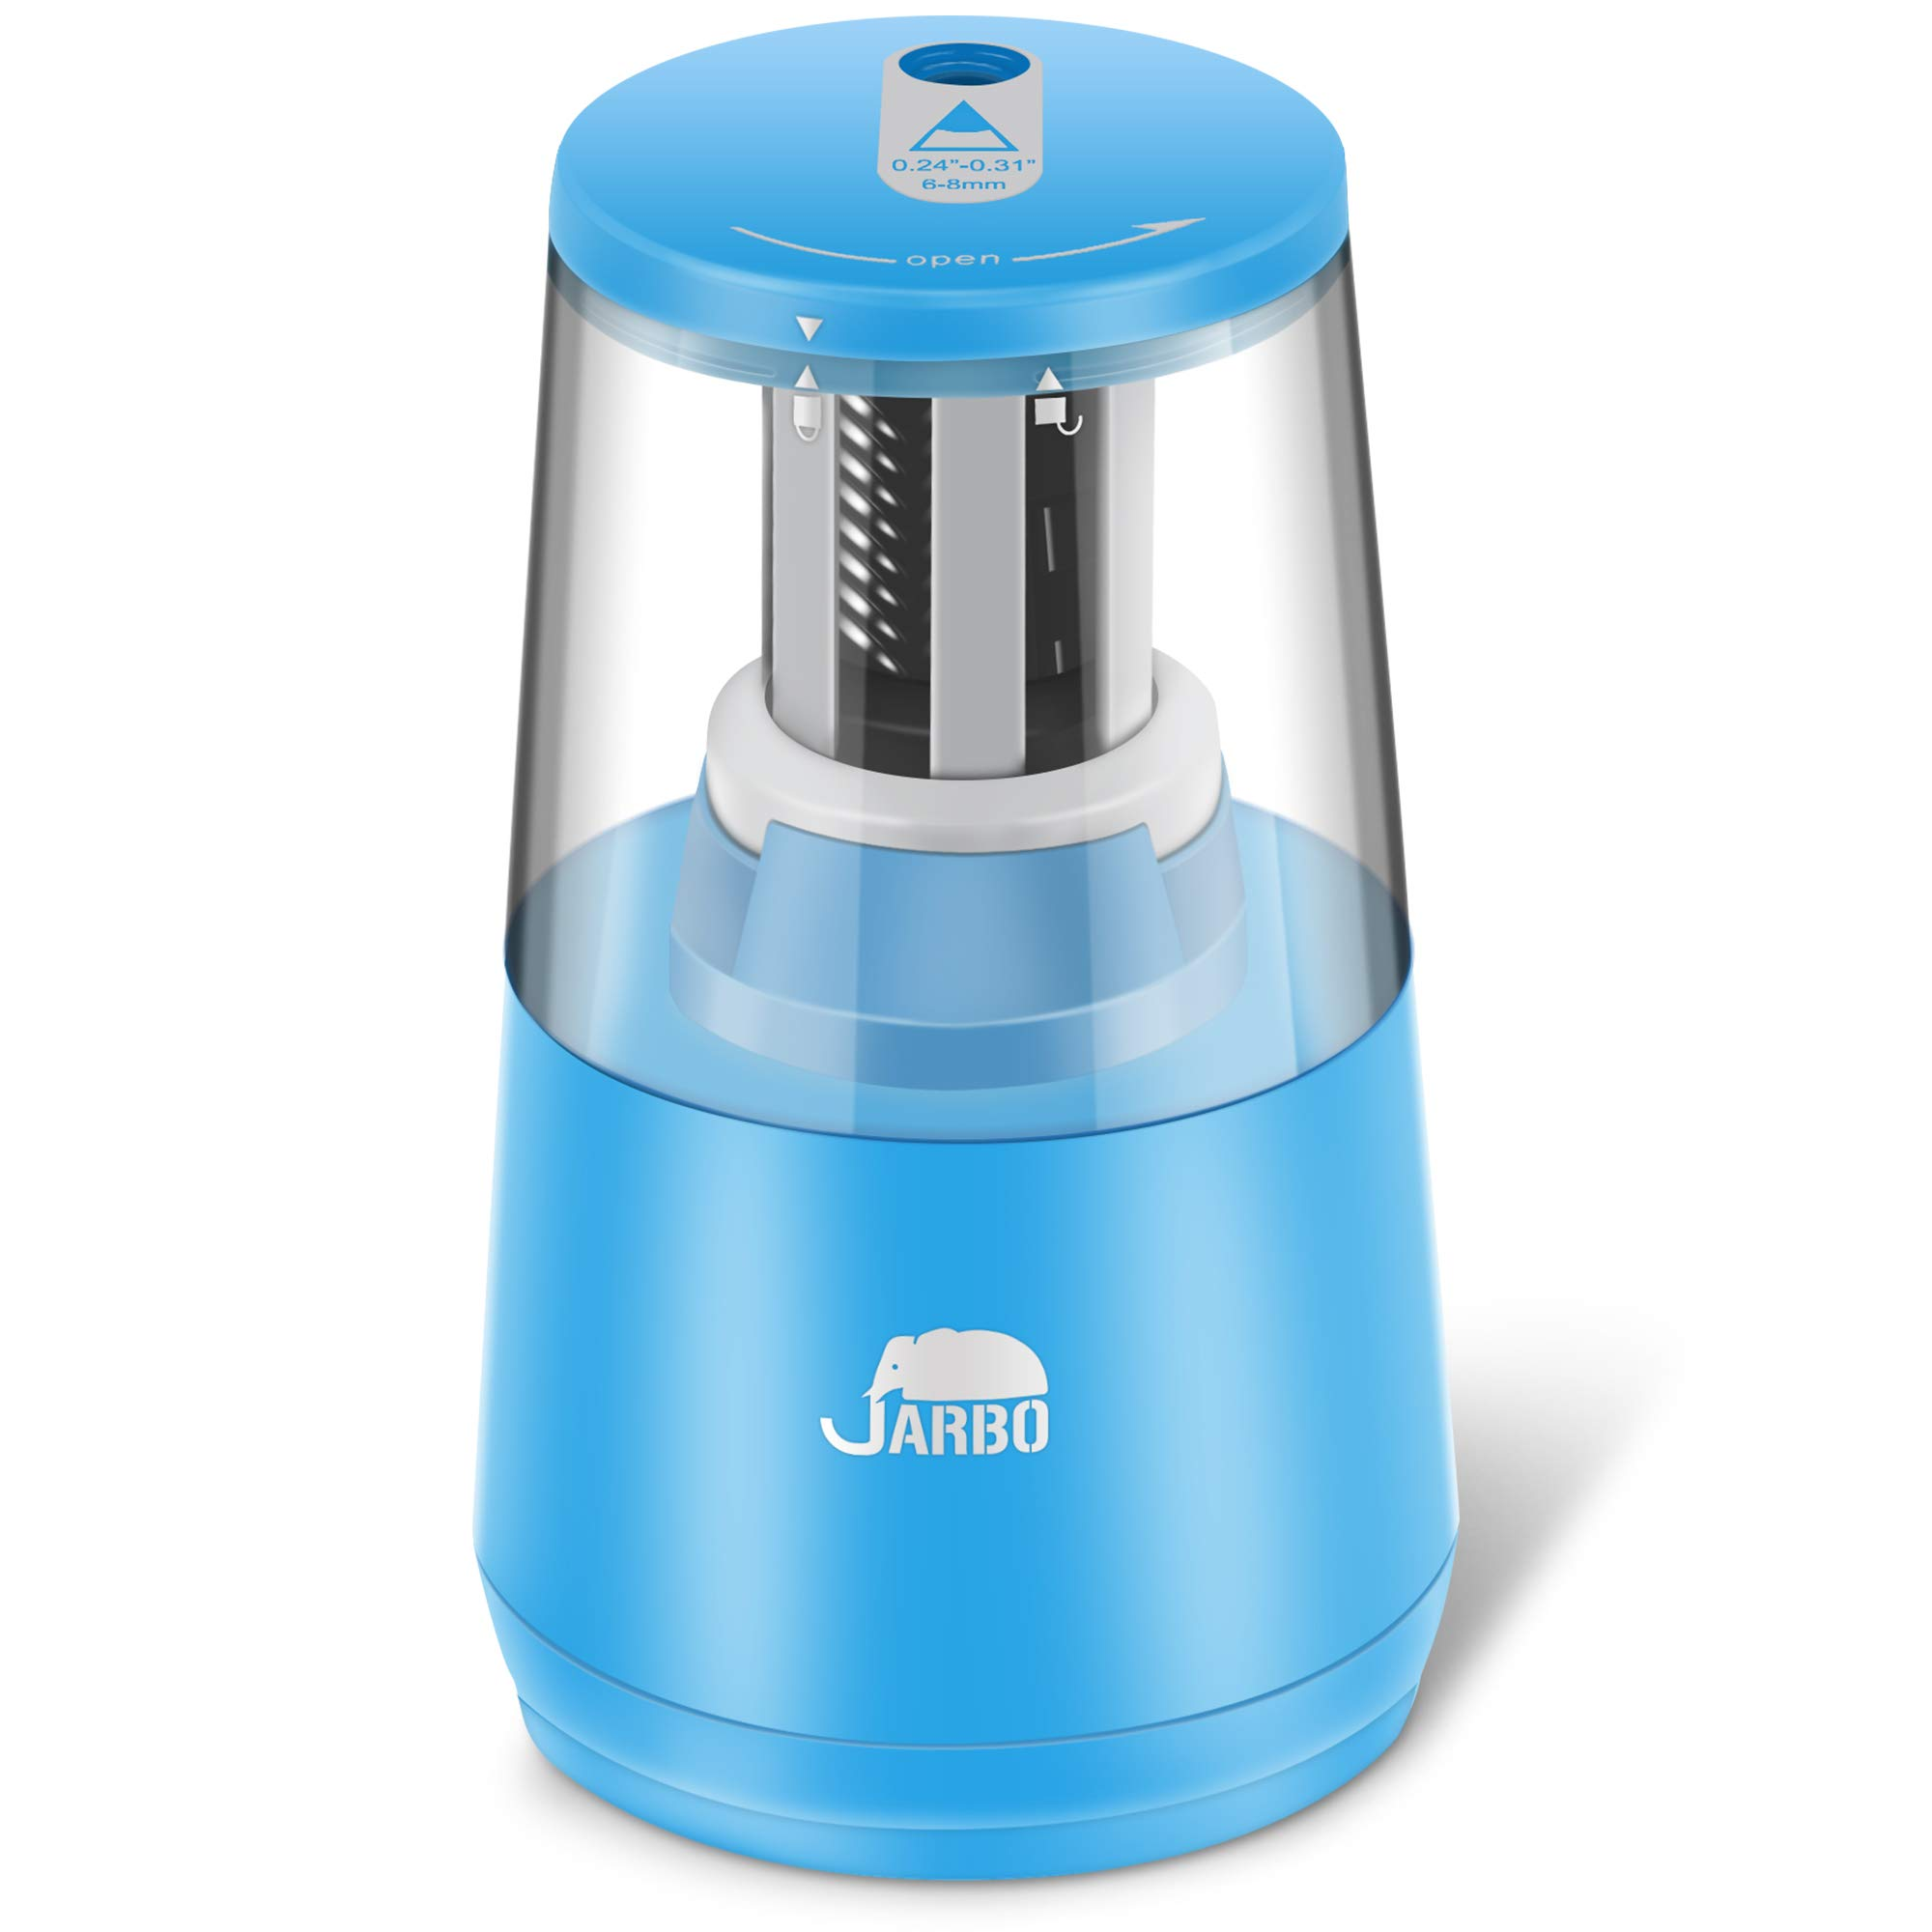 Colored Pencil Heavy duty Blade, Electric Pencil Sharpener Heavy Duty Blade Helical to Fast Sharpen and Auto Stop for 2B pencil and Colored Pencil Operated with USB or AA Battery in Classroom Office